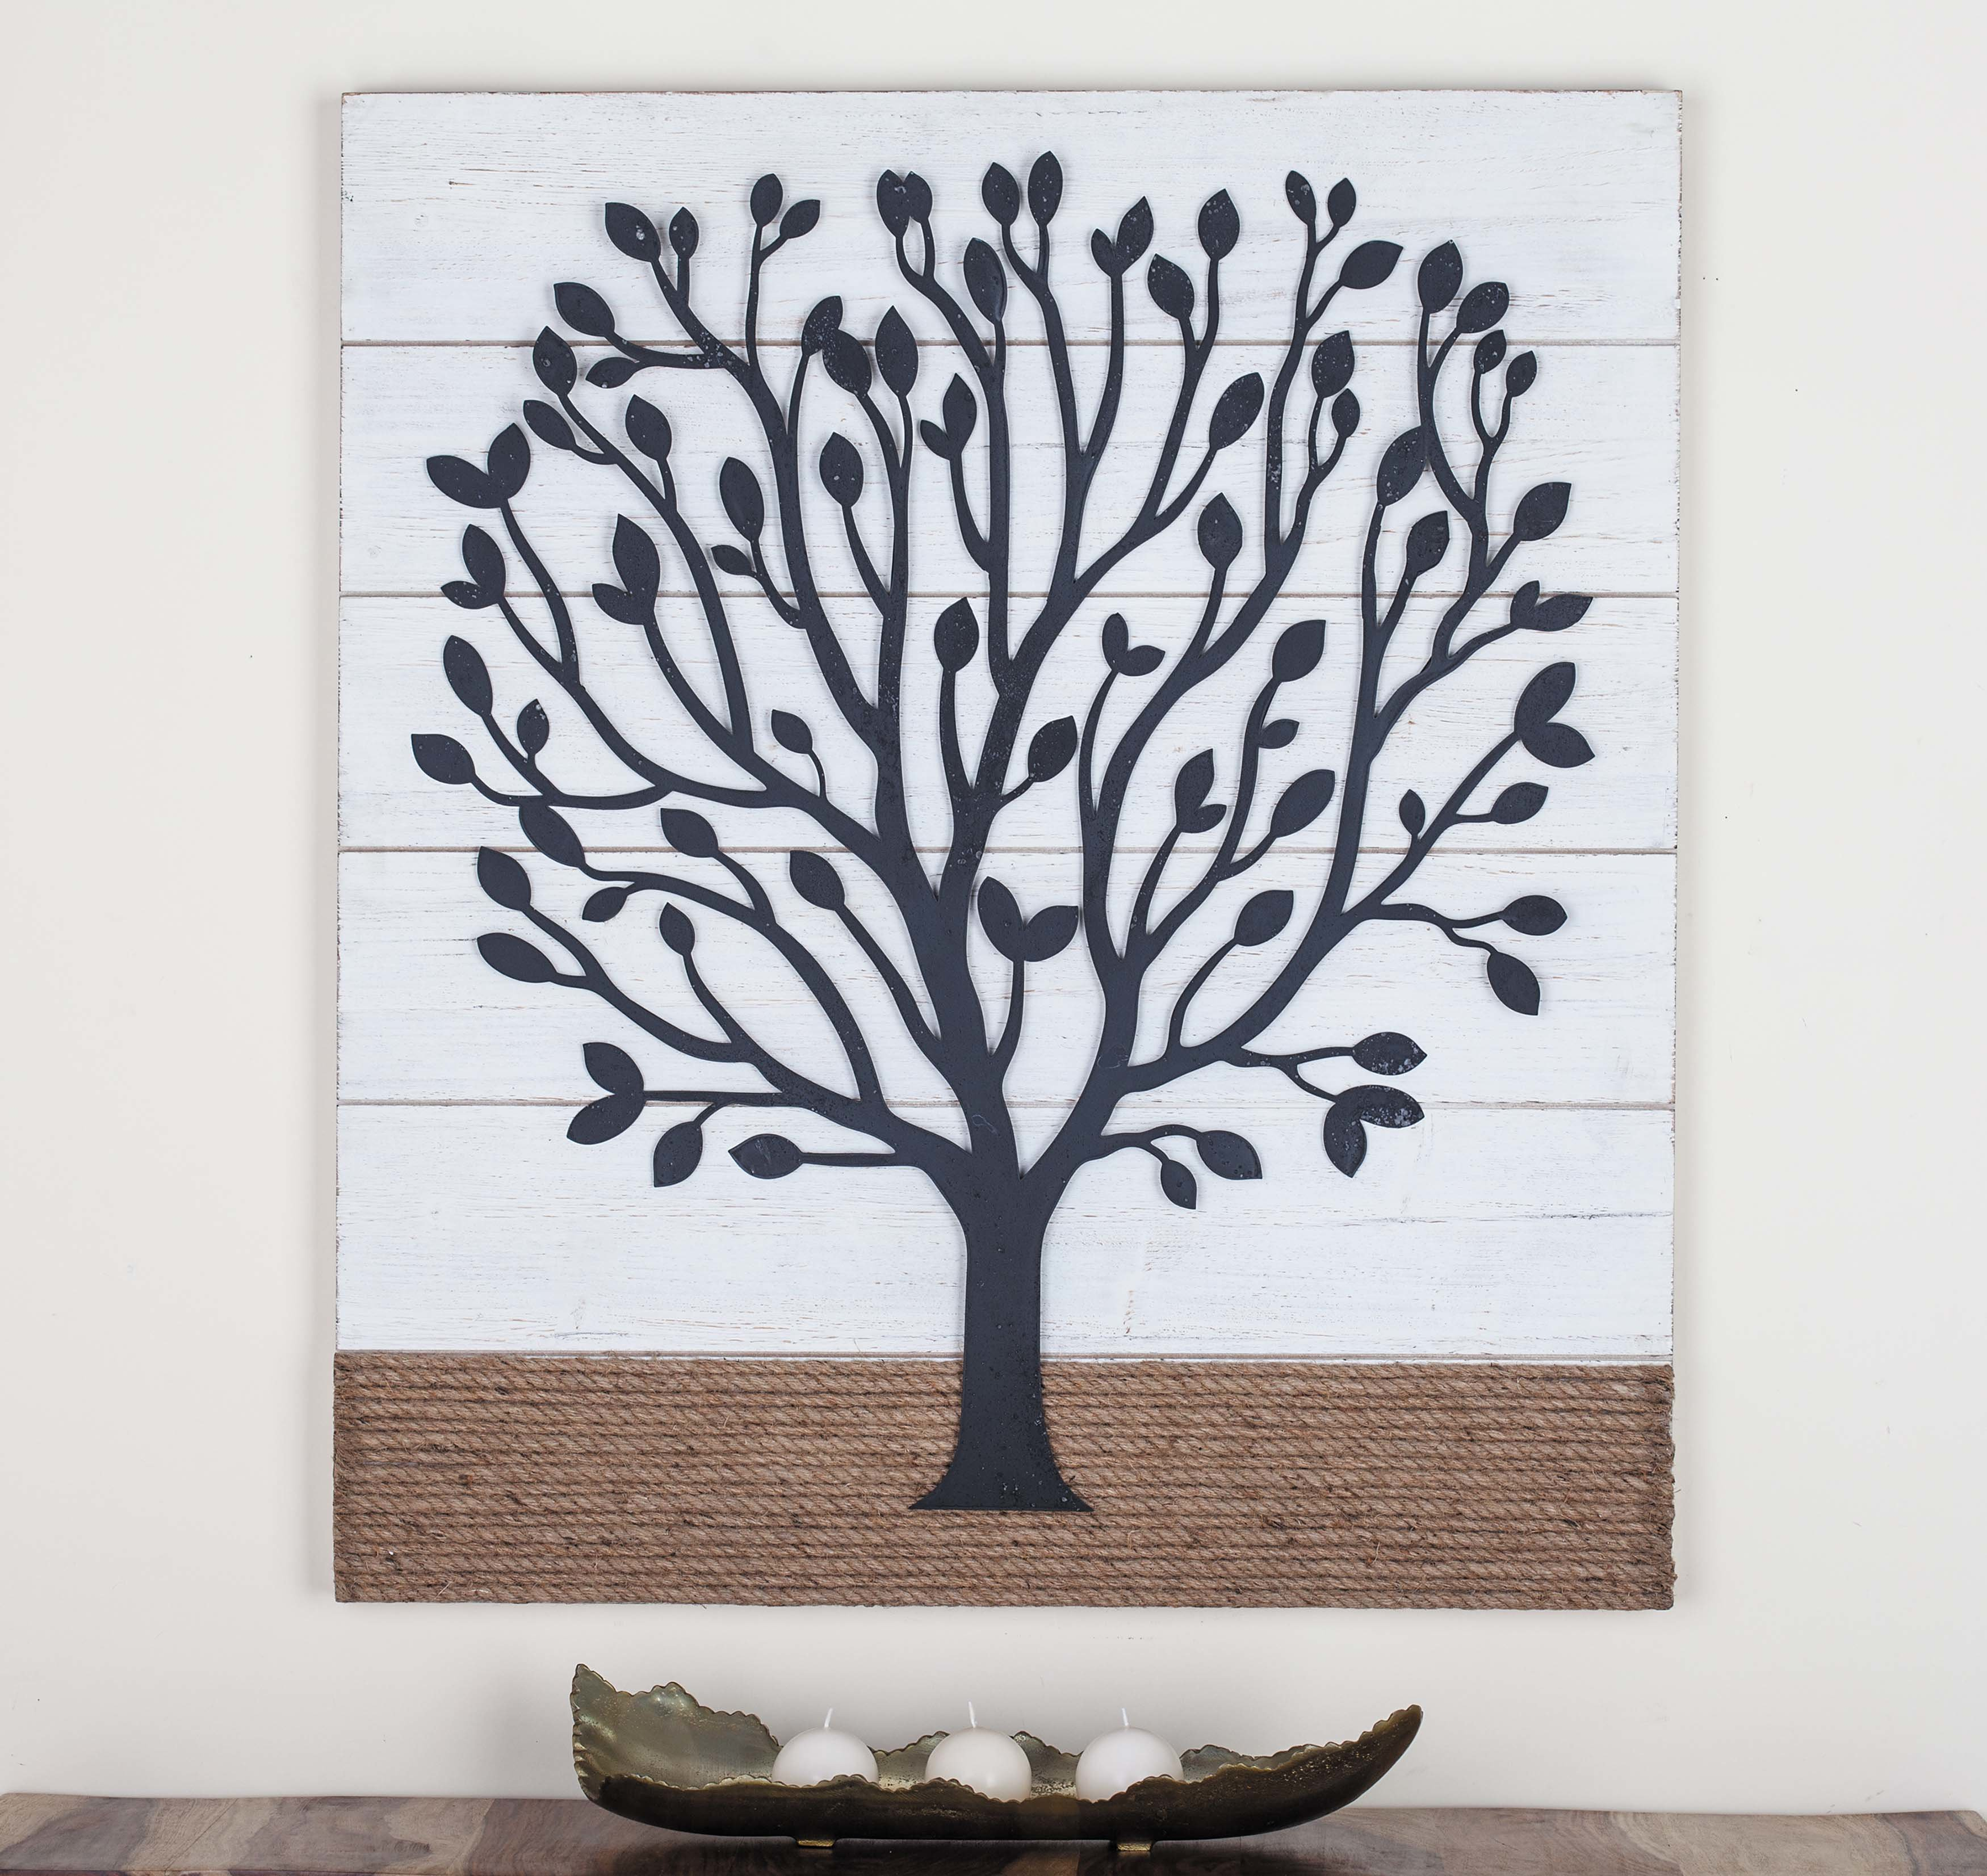 Wood/metal Rope Wall Décor Pertaining To Metal Rope Wall Sign Wall Decor (View 12 of 30)